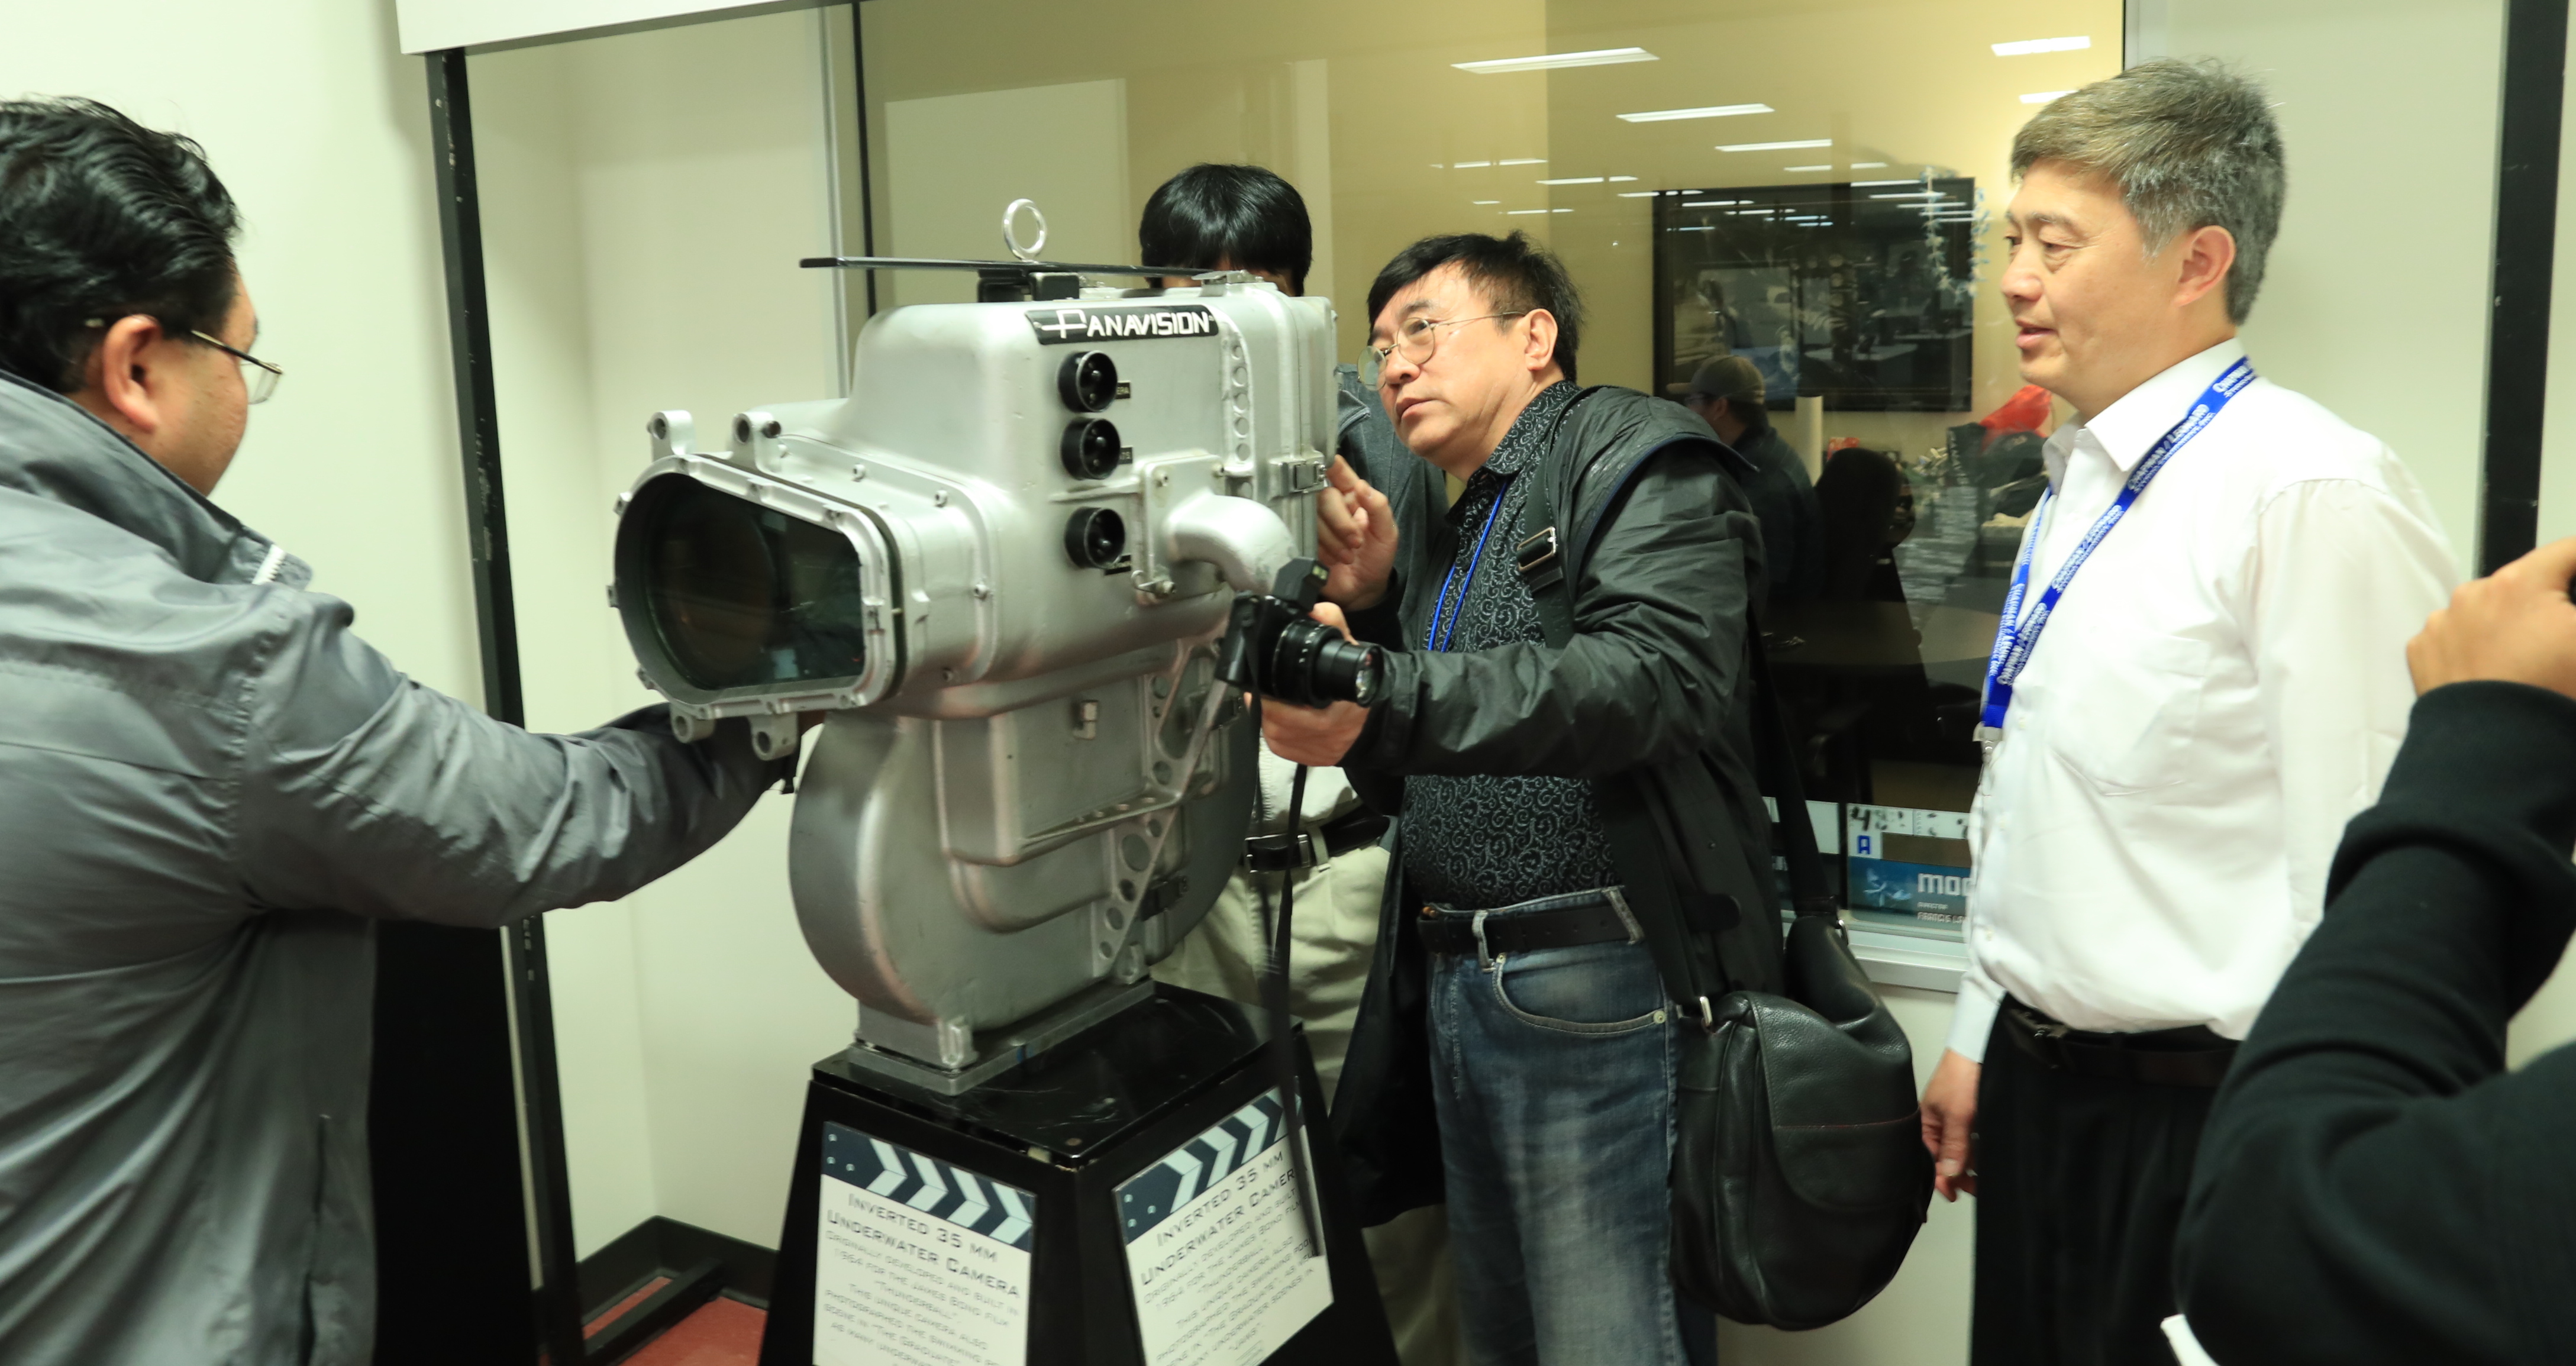 Inspecting a Panavision underwater camera housing. Photo by James Neihouse, ASC